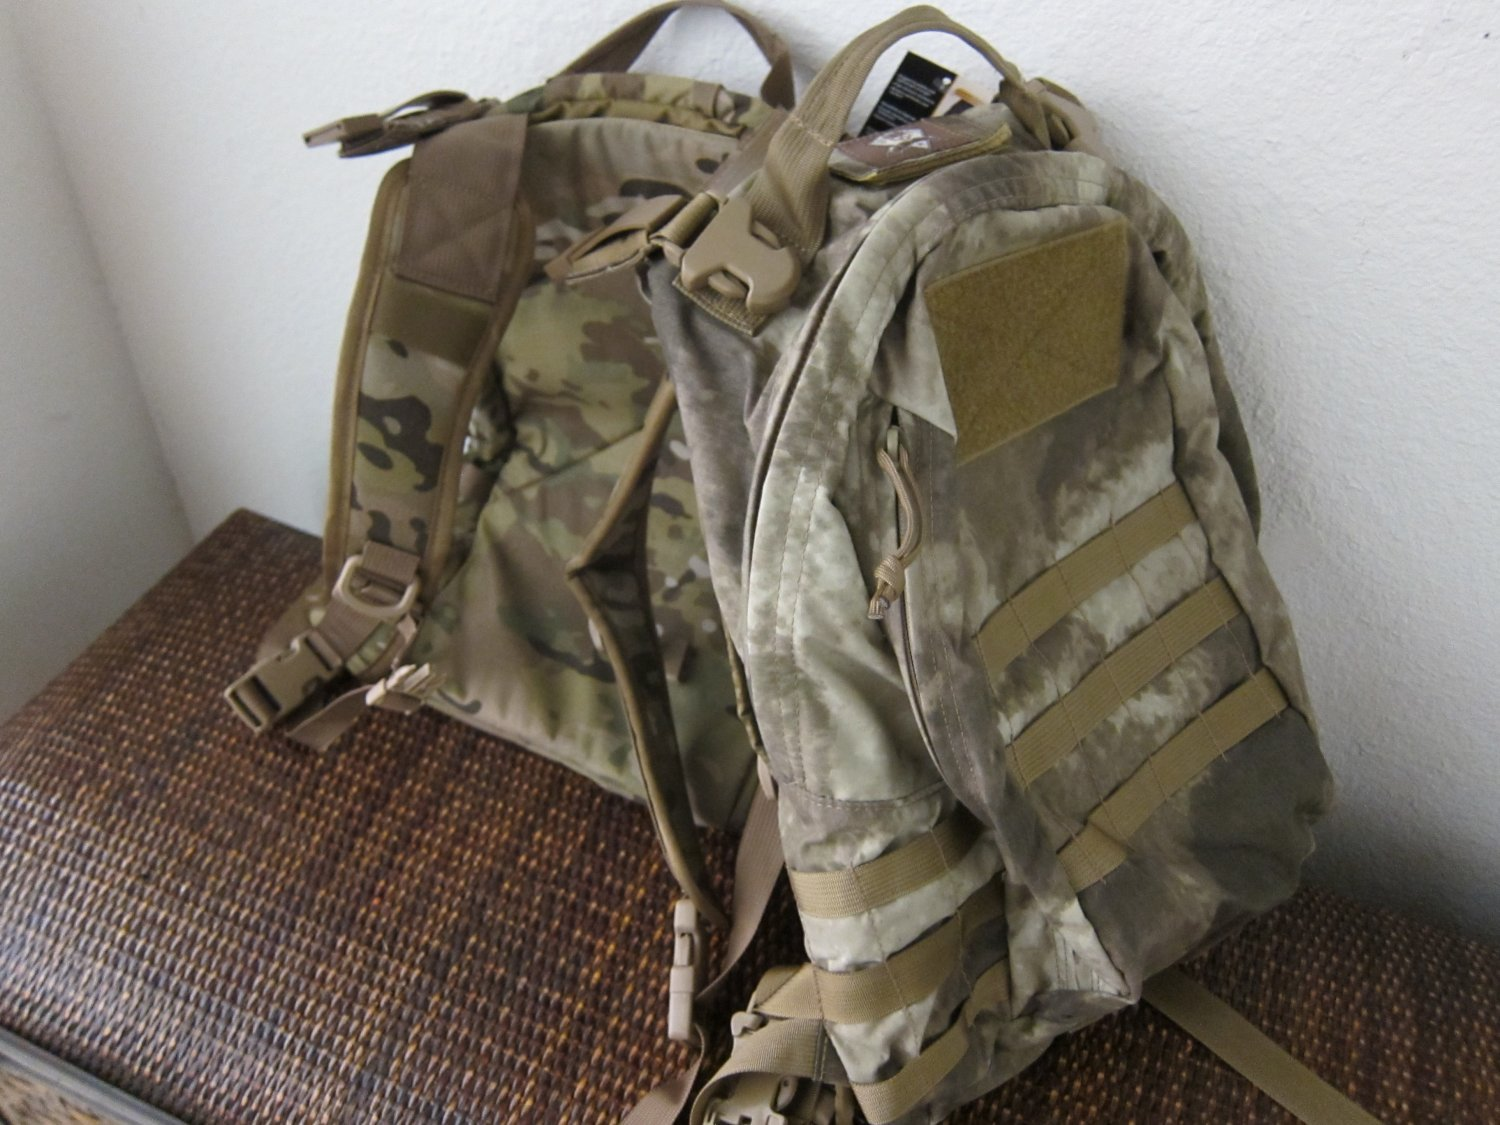 Grey Ghost Outlet Lightweight Assault Pack Fight Lite Operator Removable Pack LAP FLOR Crye MultiCam A TACS Camouflage 21 <!  :en  >Grey Ghost Lightweight Assault Pack/Fight Lite Operator Removable Pack (LAP/FLORP): MOLLE Attachable Lightweight Tactical Pack (Backpack) for Special Operations Forces (SOF) <!  :  >